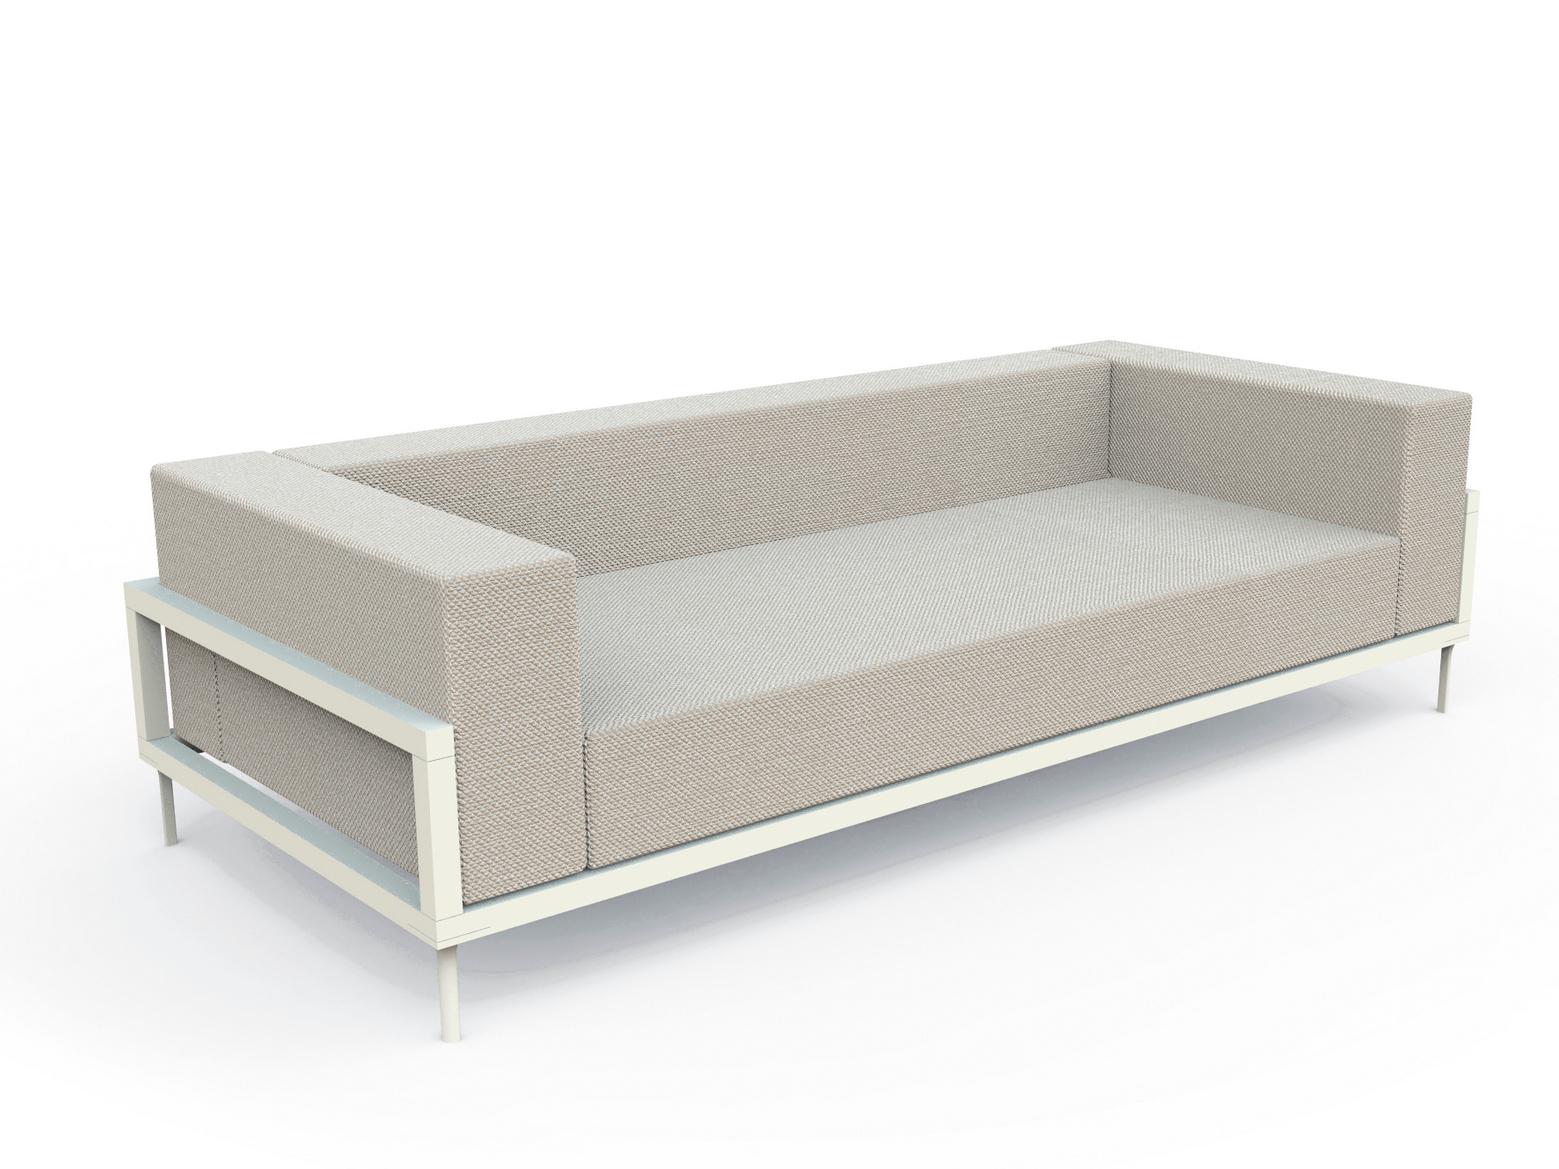 luxe 2 seat sofa slipcover ikea single sleeper apropos seater option daybed aluminum mod couture